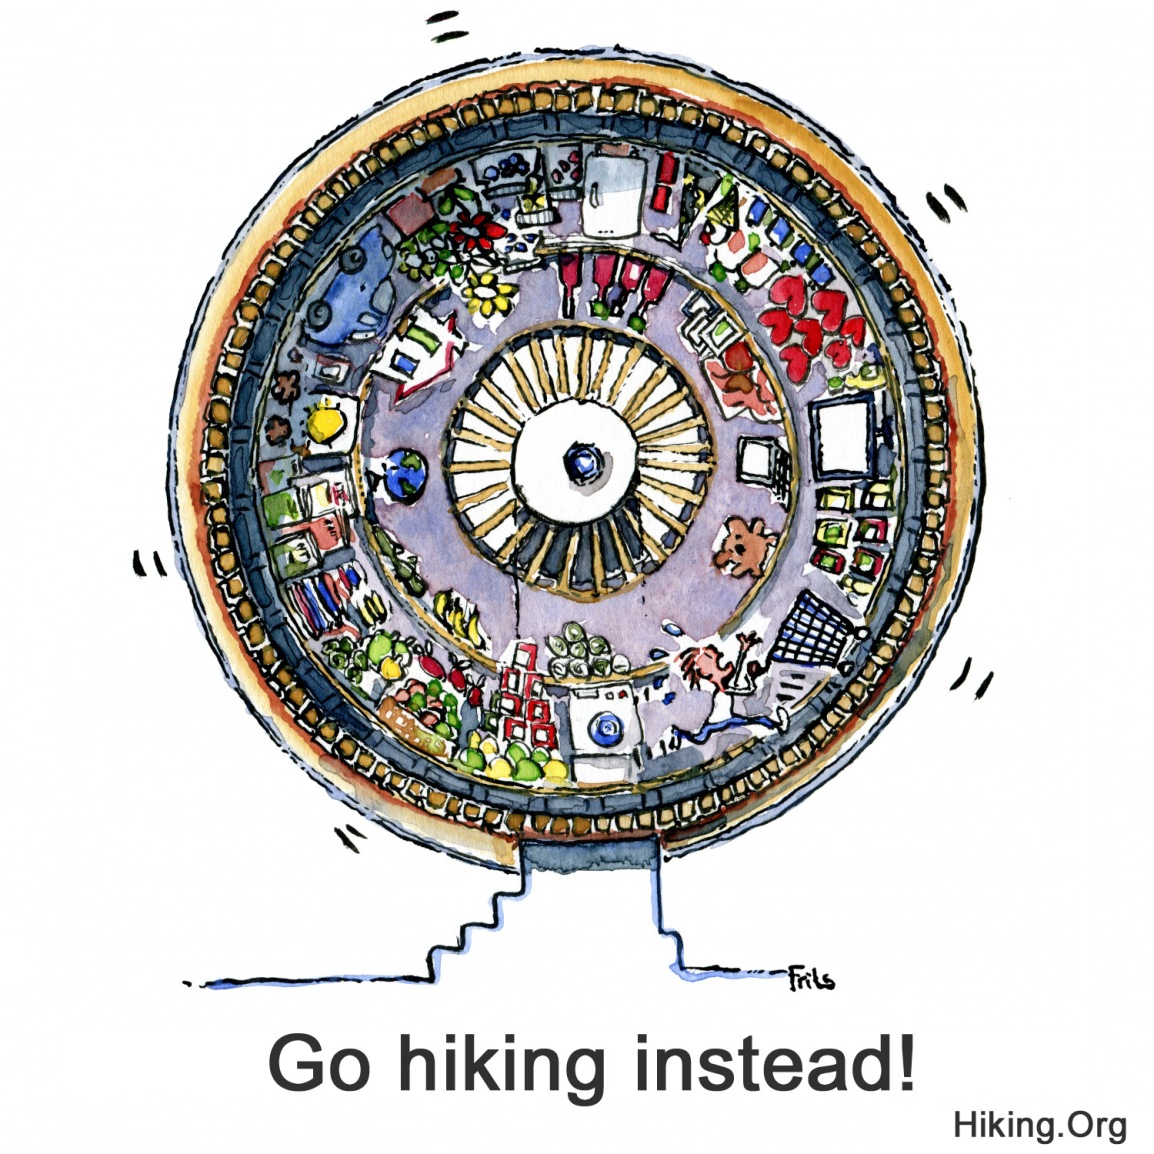 Tired of the Hamster Wheel? Go Hiking instead